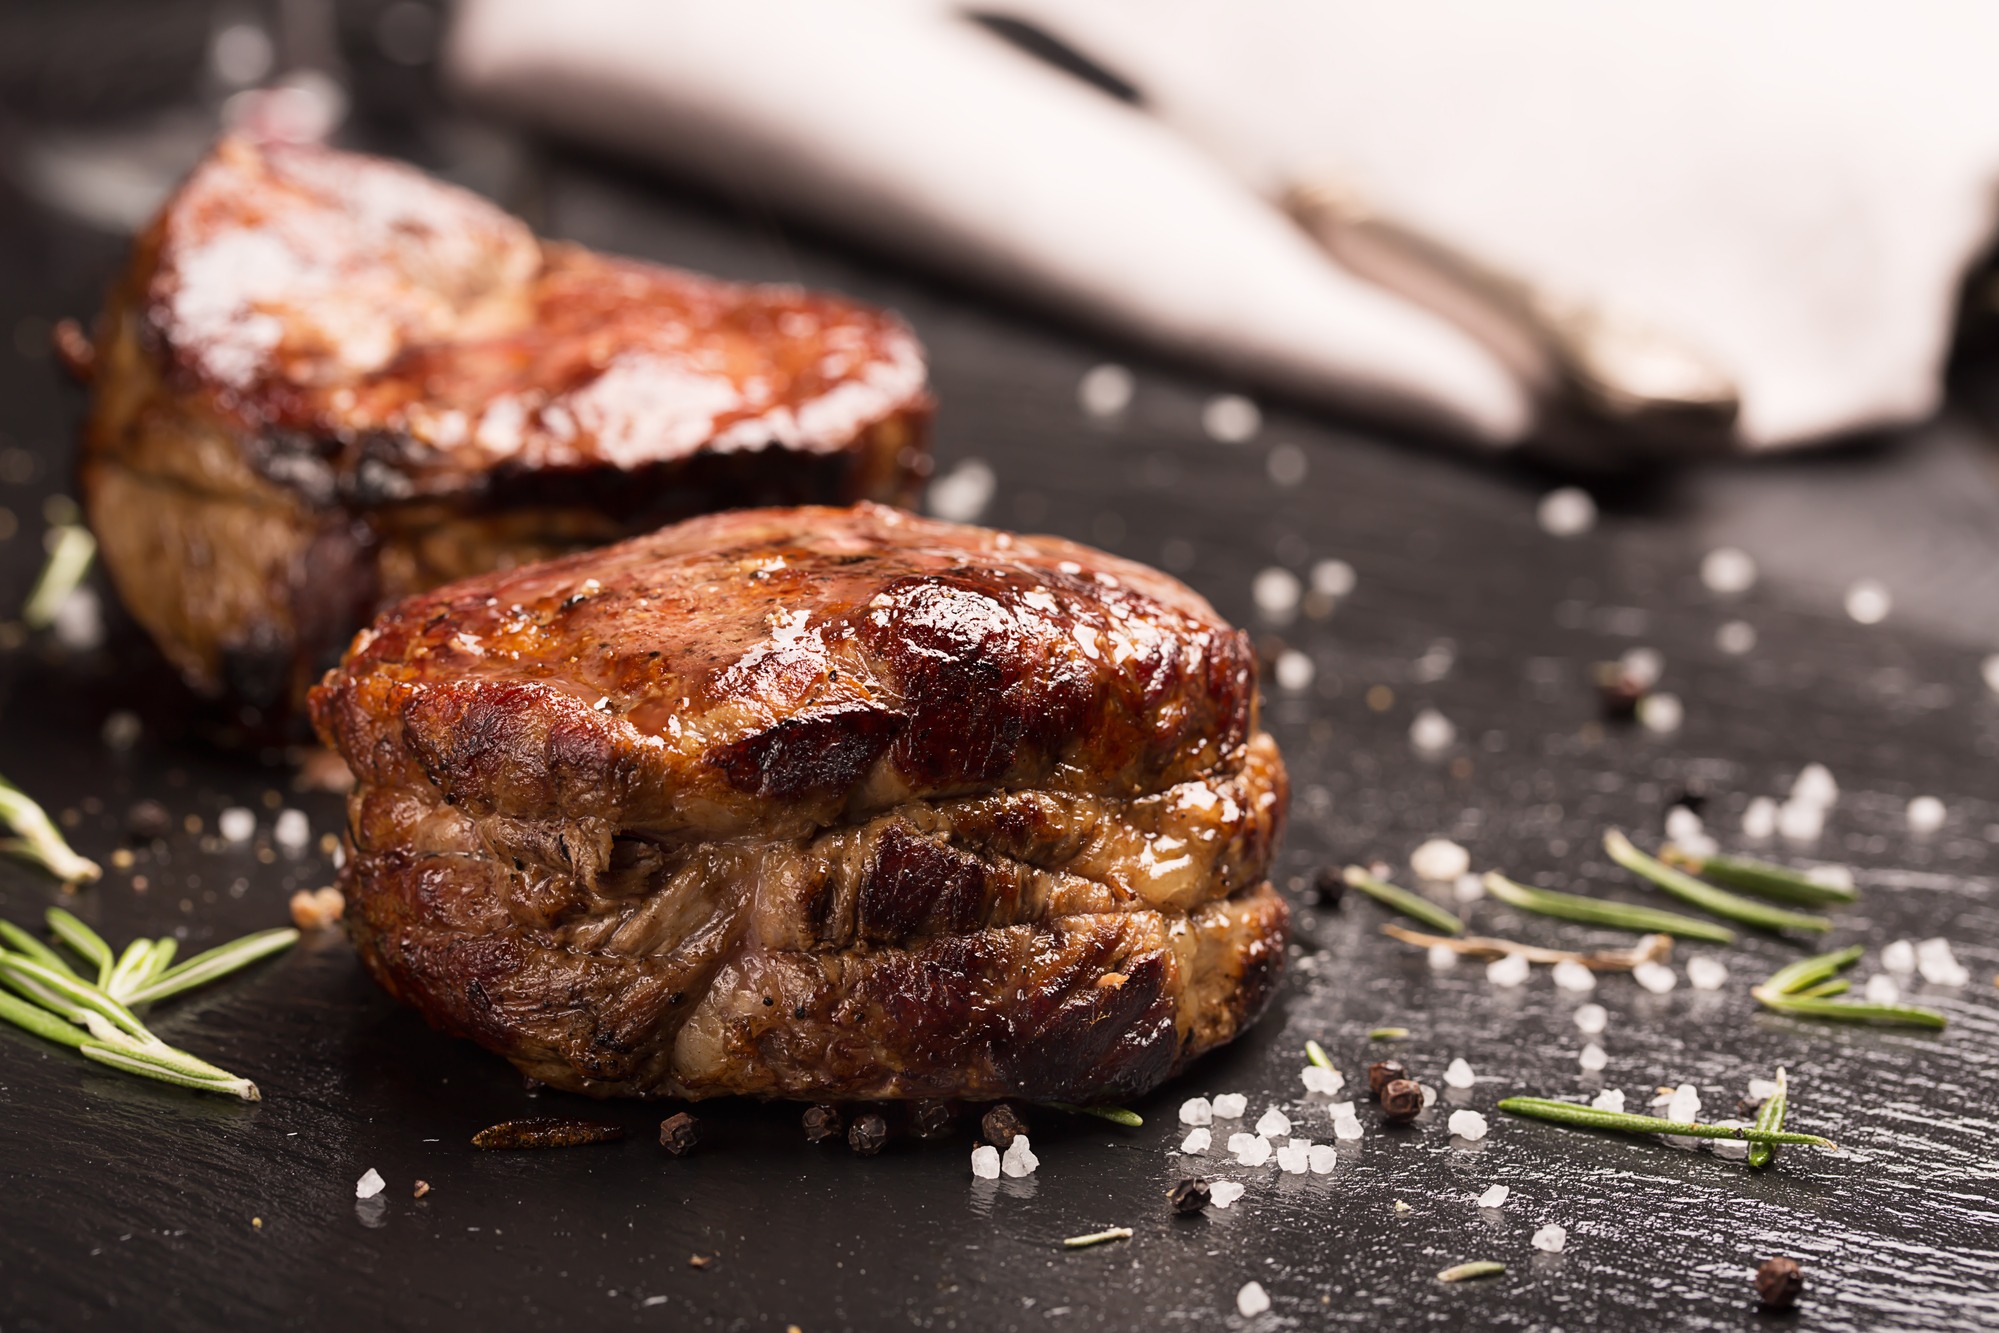 Grilled steak meat (mignon) on the dark surface. Dark background